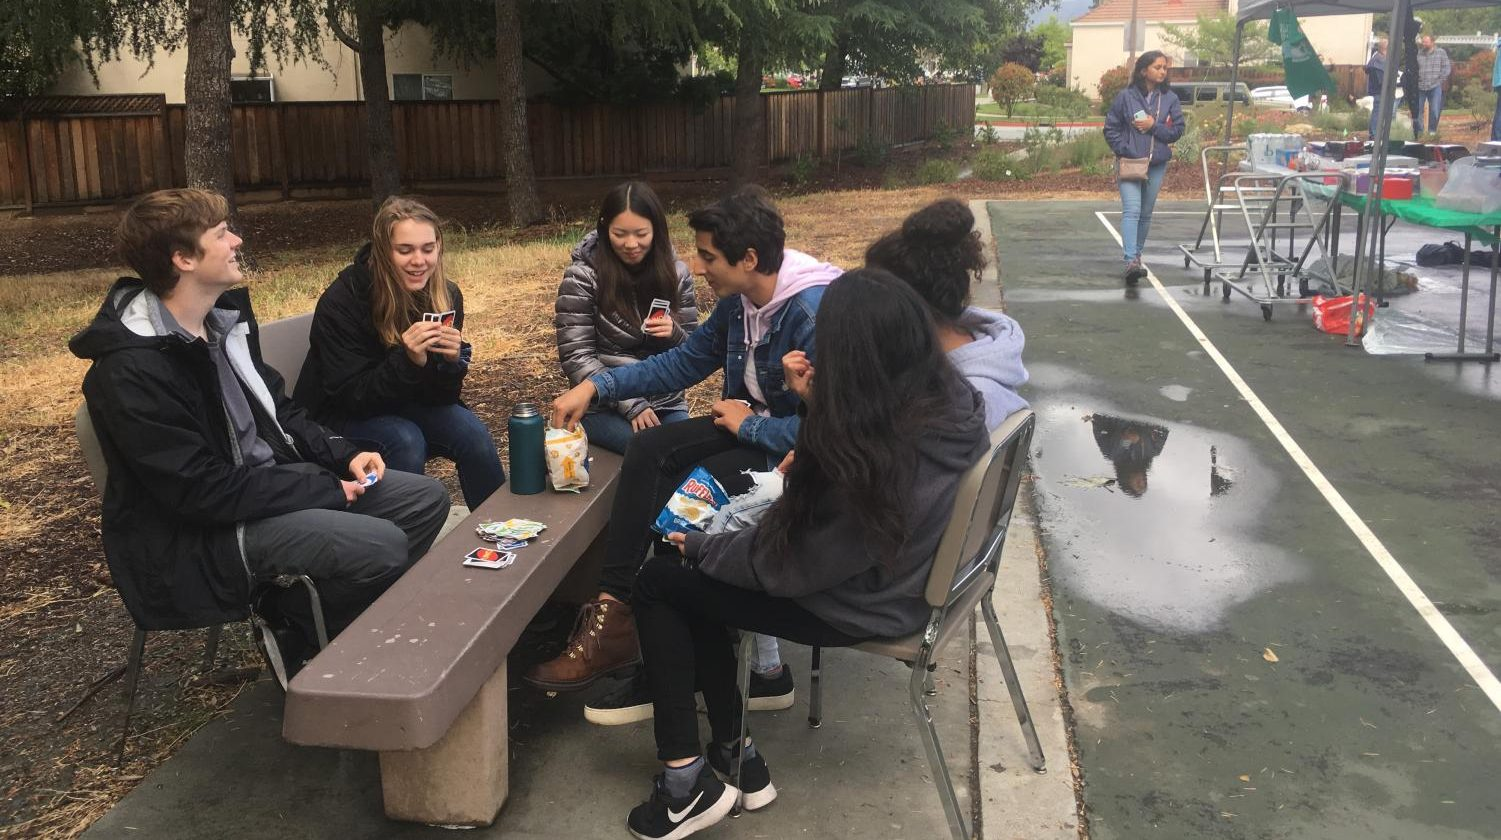 Attendees of the festival eat snacks and play games at Branham Park. SPARE is one the clubs ASB leaders say are making a bigger impact on campus.